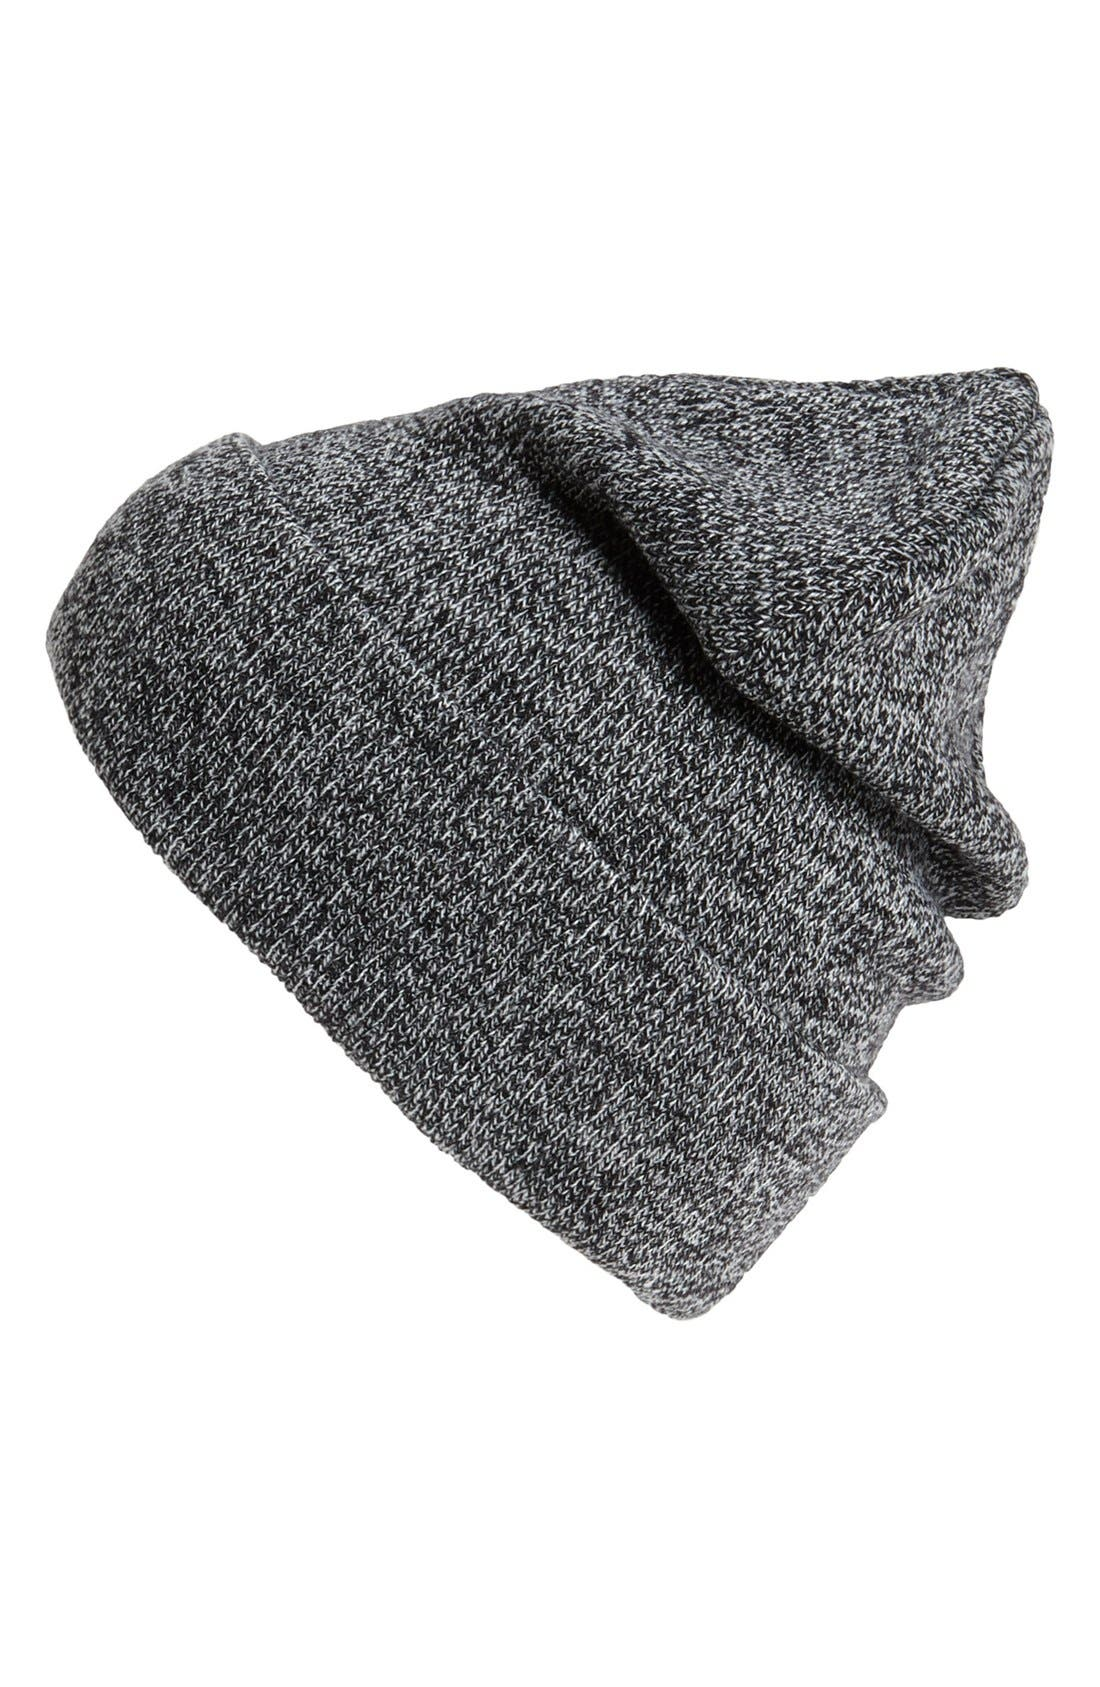 Alternate Image 1 Selected - Topman Mixed Yarn Beanie